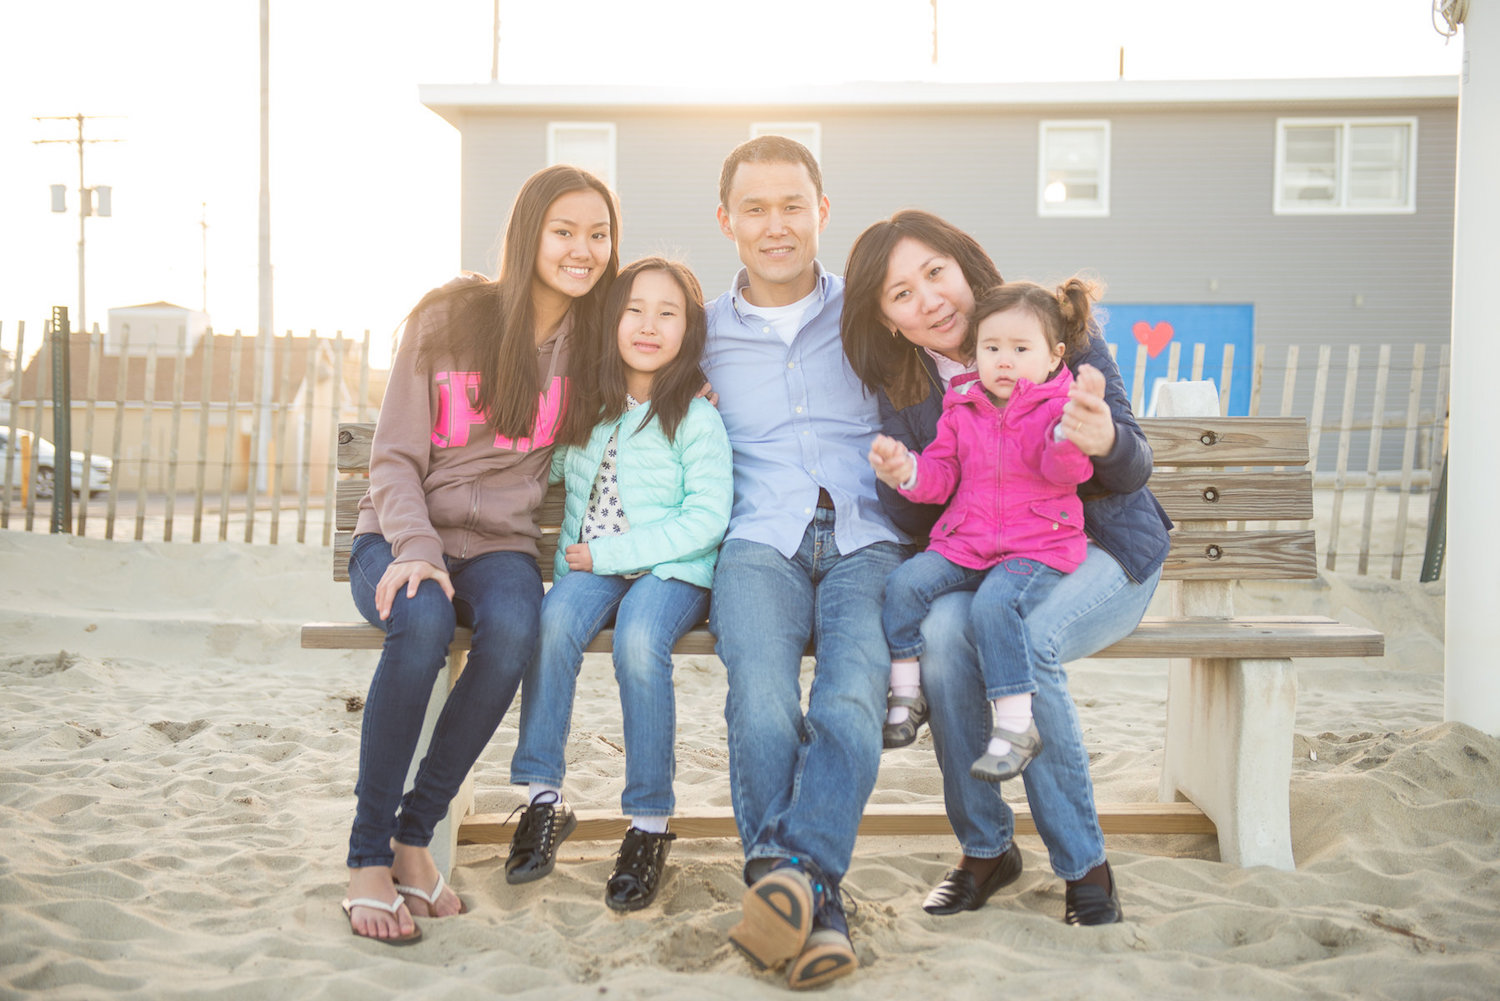 Family of three photography Manasquan Beach NJ New Jersey